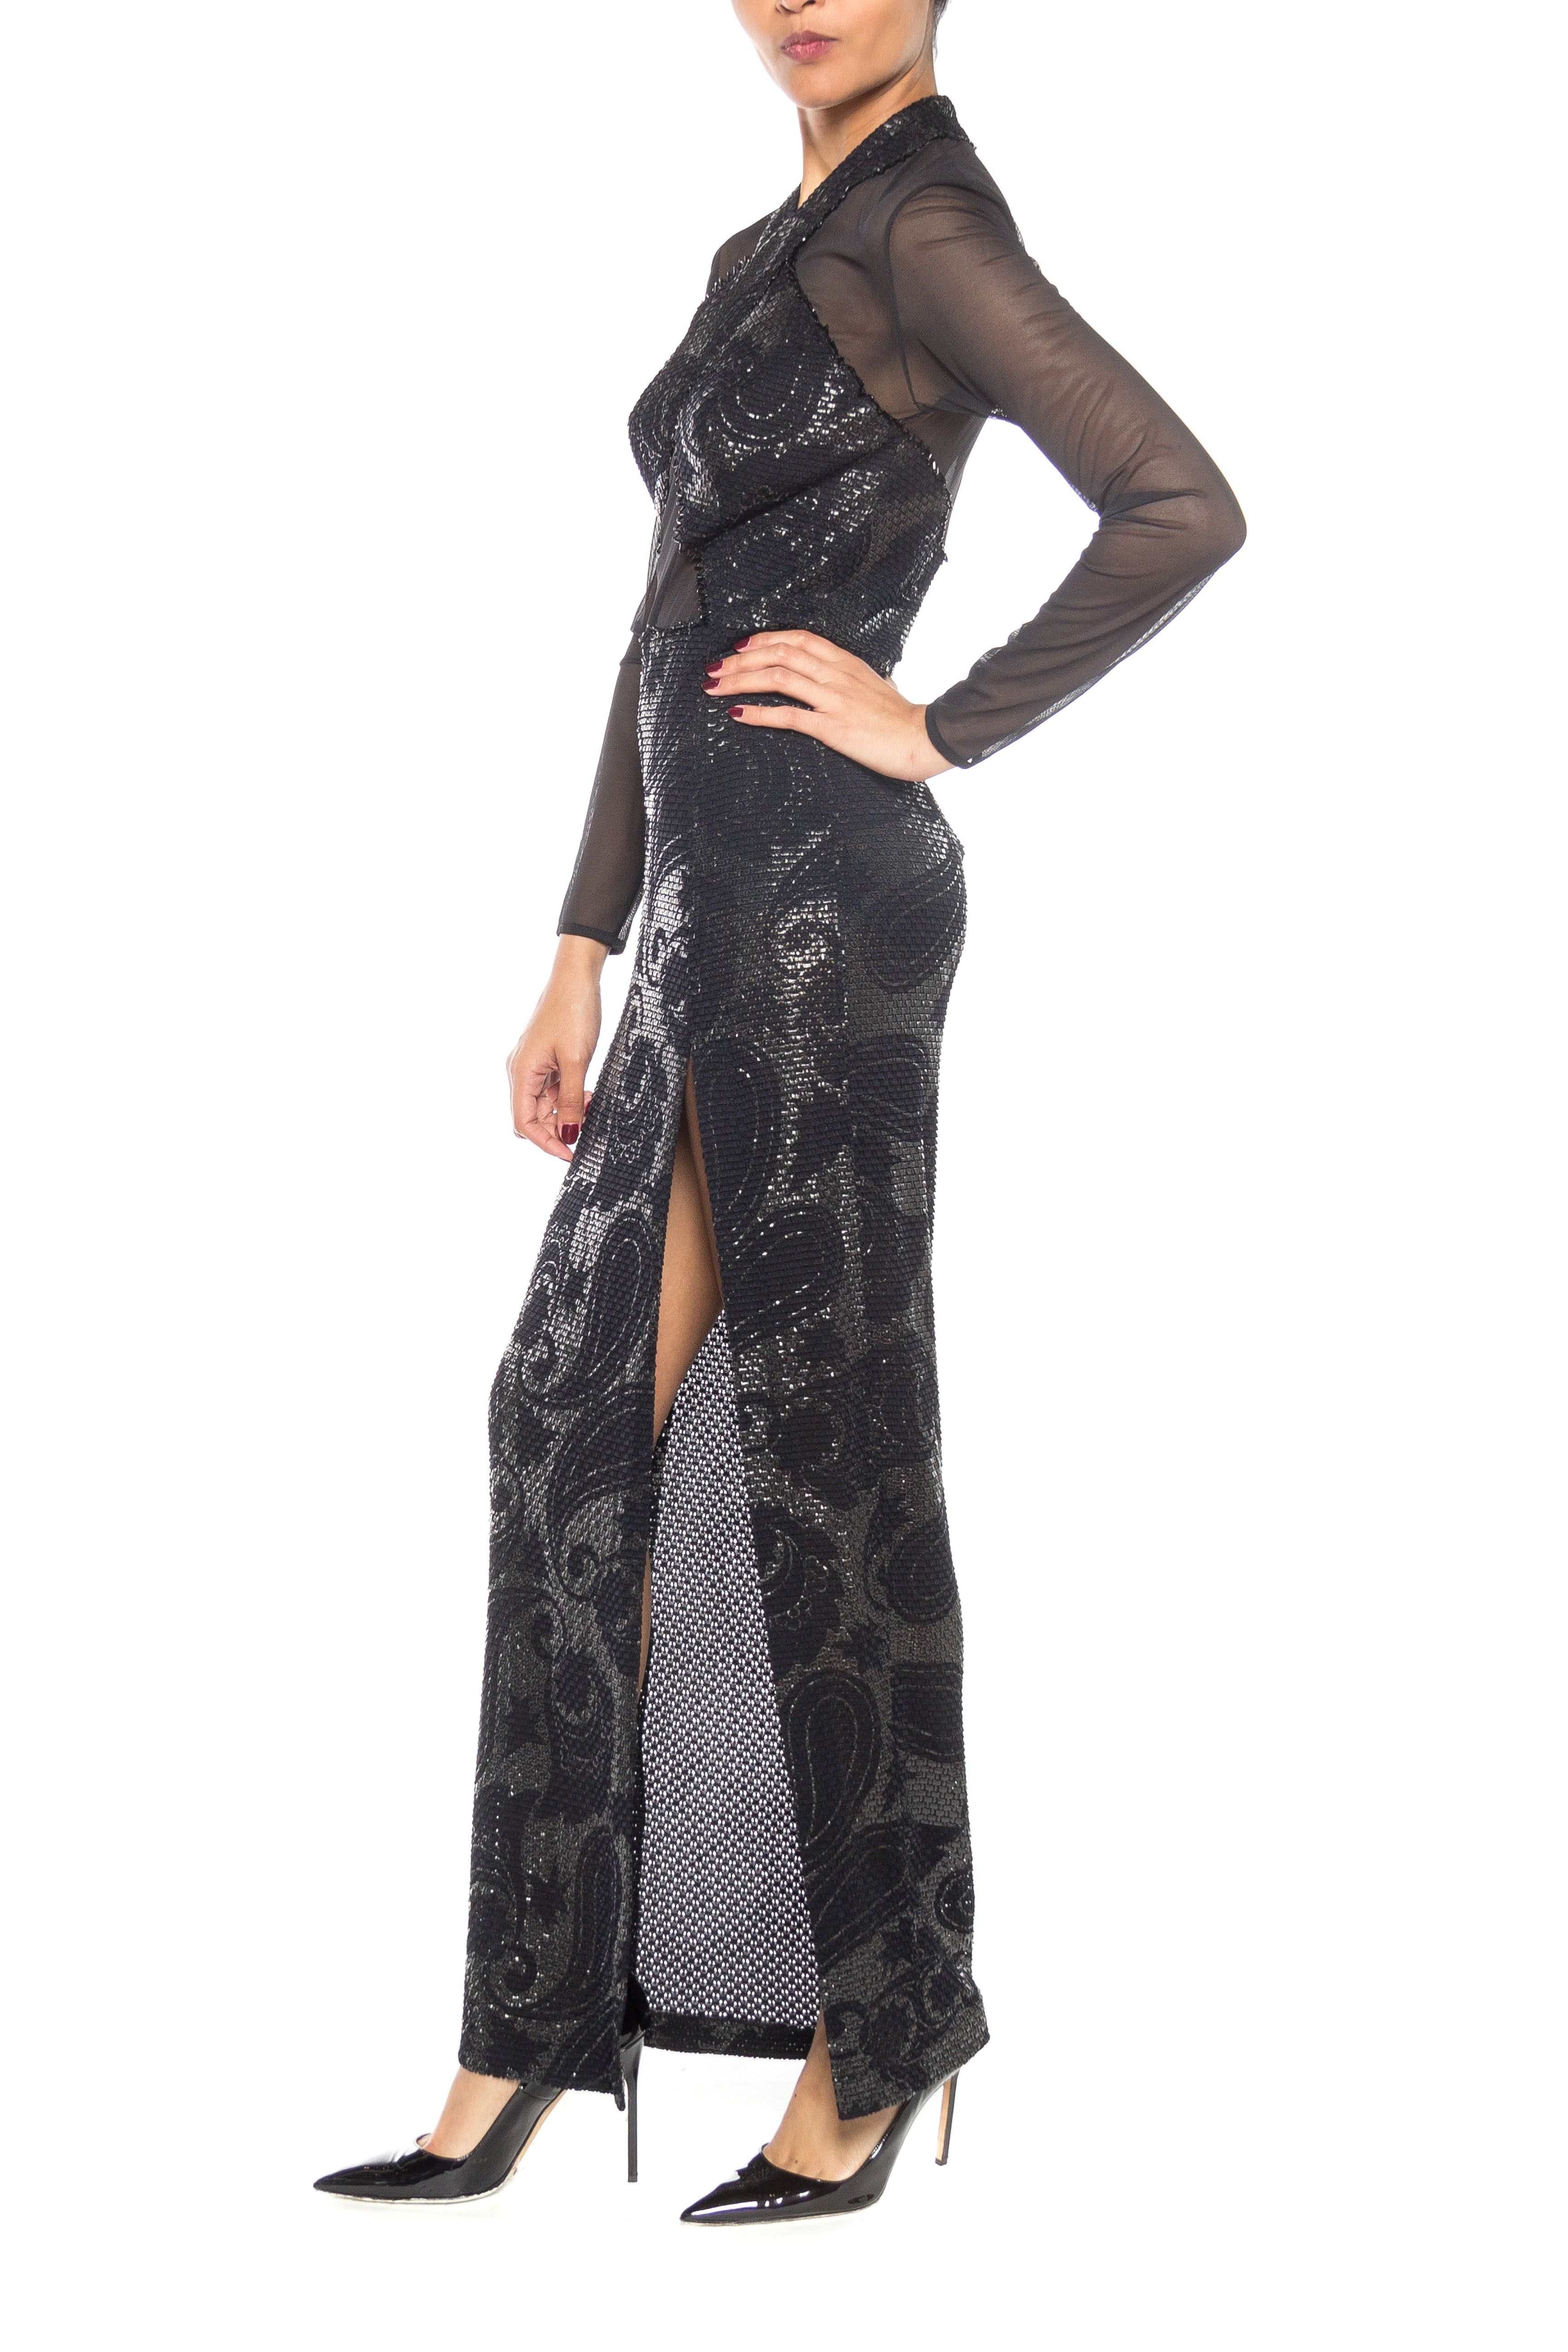 8ebb2672cb0 1980s Sheer Cut Out Bodycon Gown with Textured Metallic Print – MORPHEW